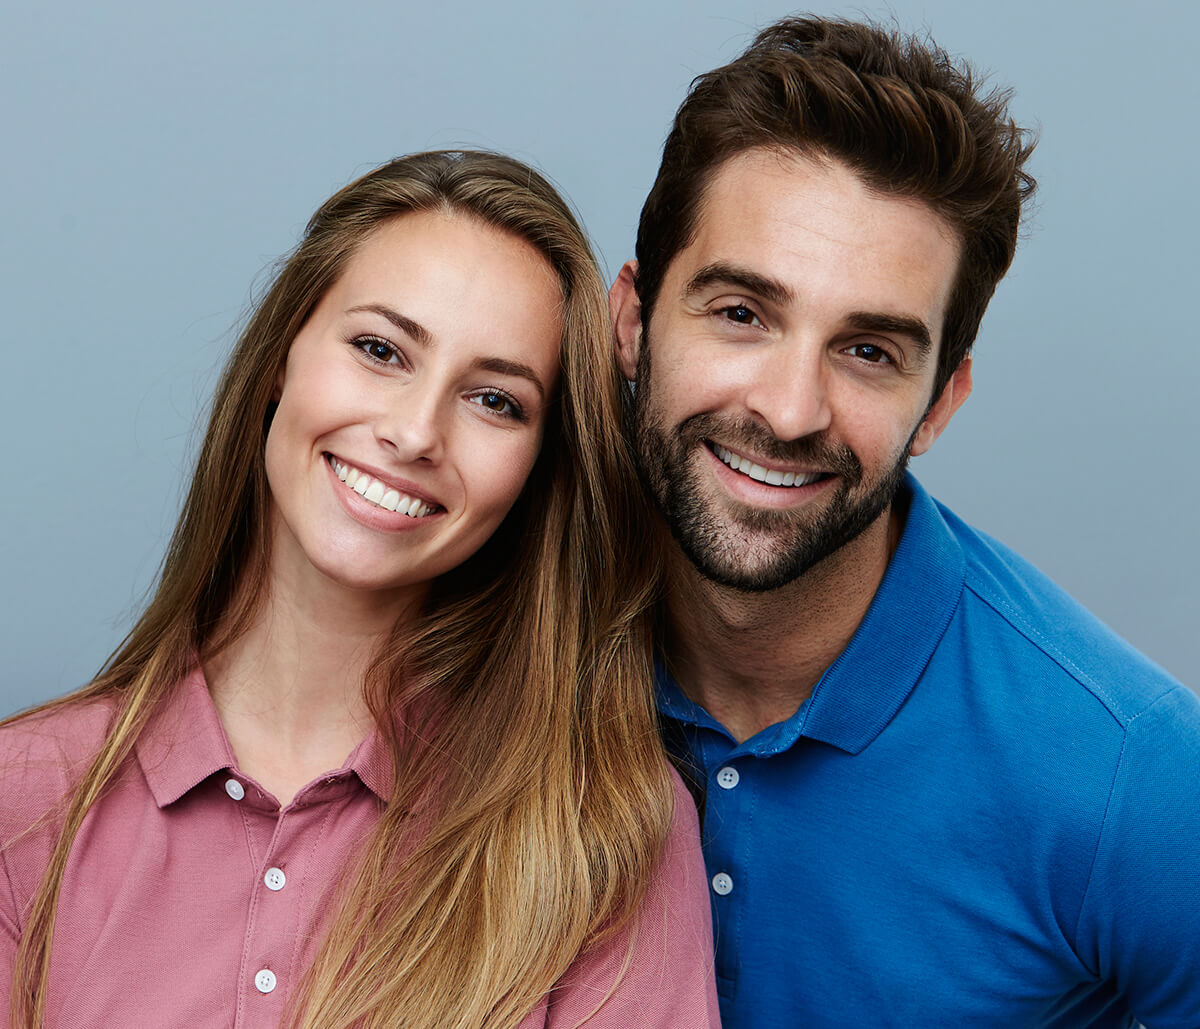 Smile Makeover Dentist with Dr. Stephen Matarazzo in Quincy Area